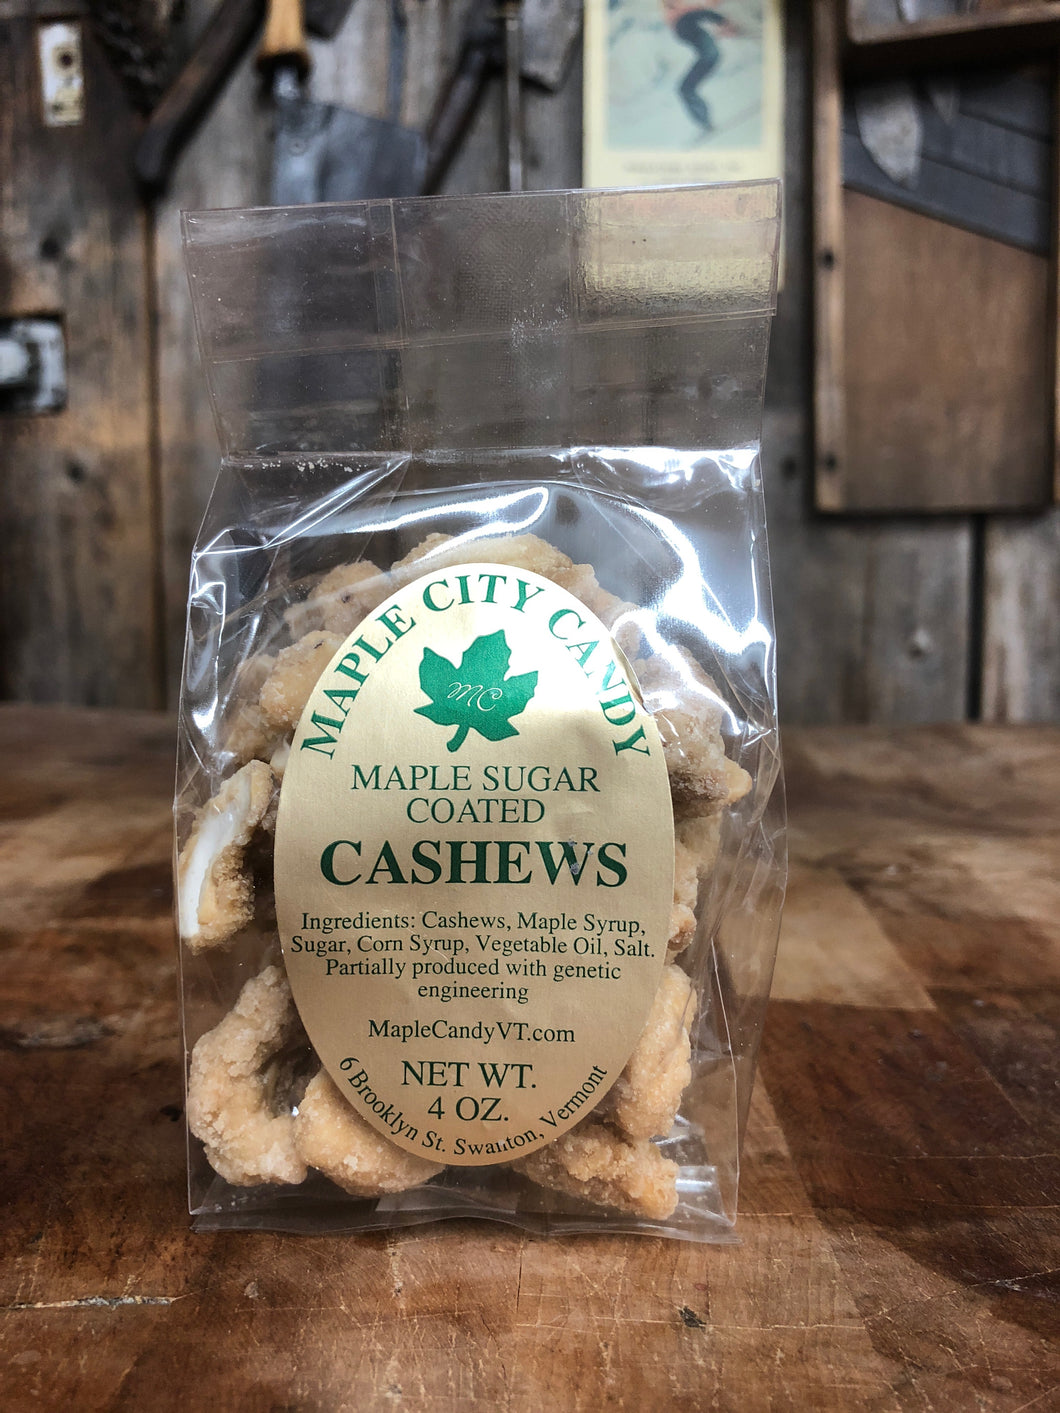 Maple City Candy Maple Sugar Coated Cashews